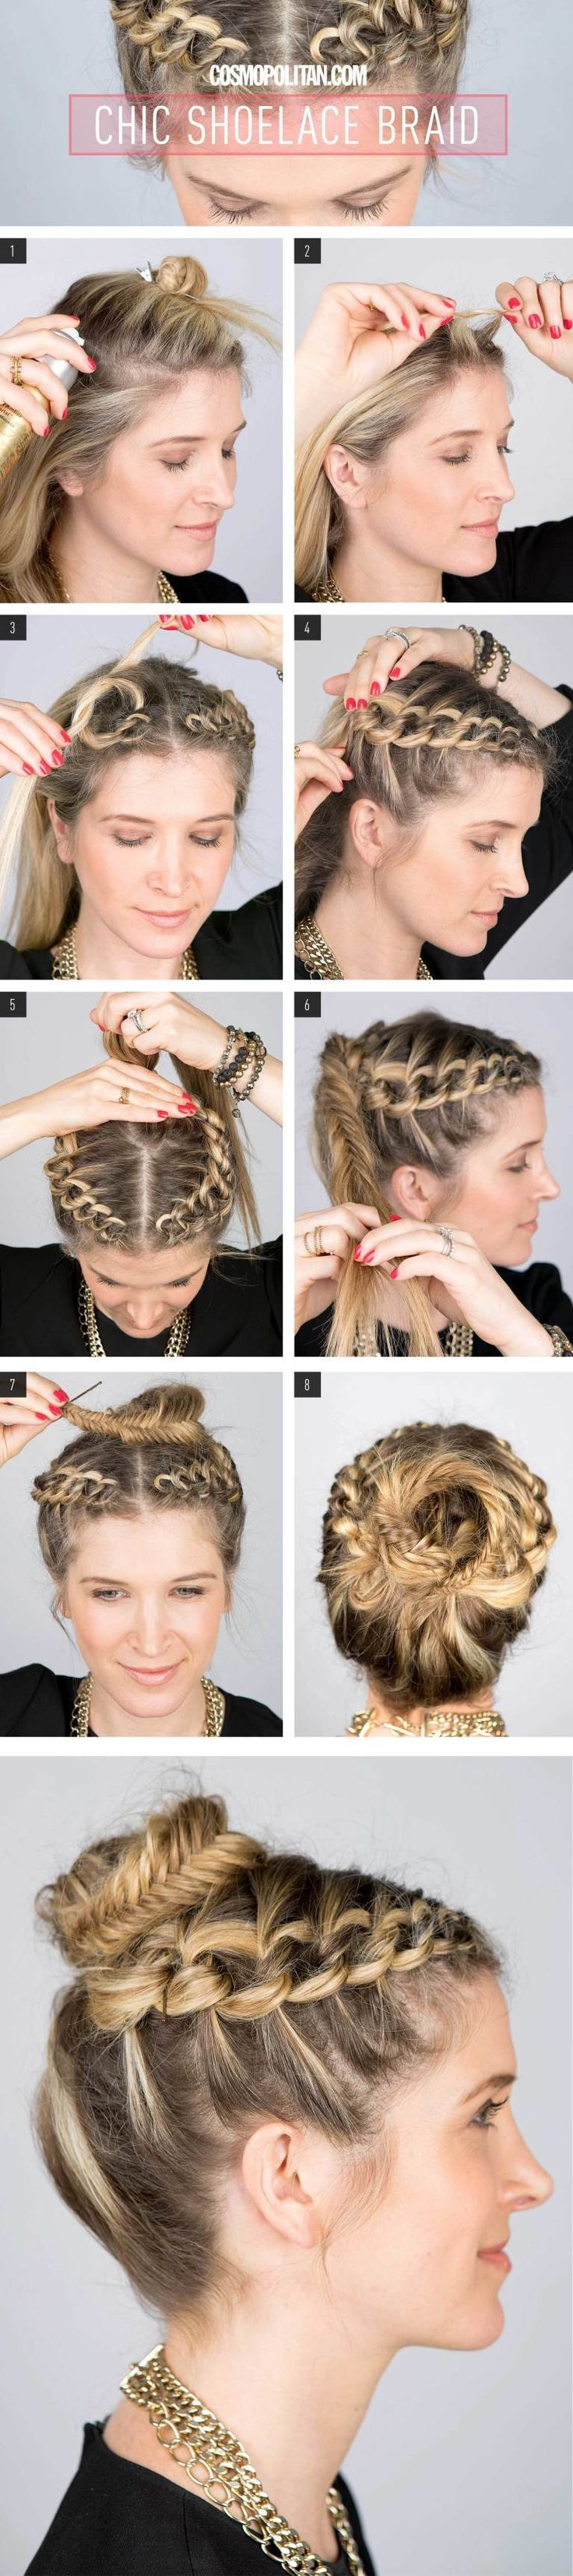 Pretty Braided Crown Hairstyle Tutorials and Ideas / http://www.himisspuff.com/easy-diy-braided-hairstyles-tutorials/20/